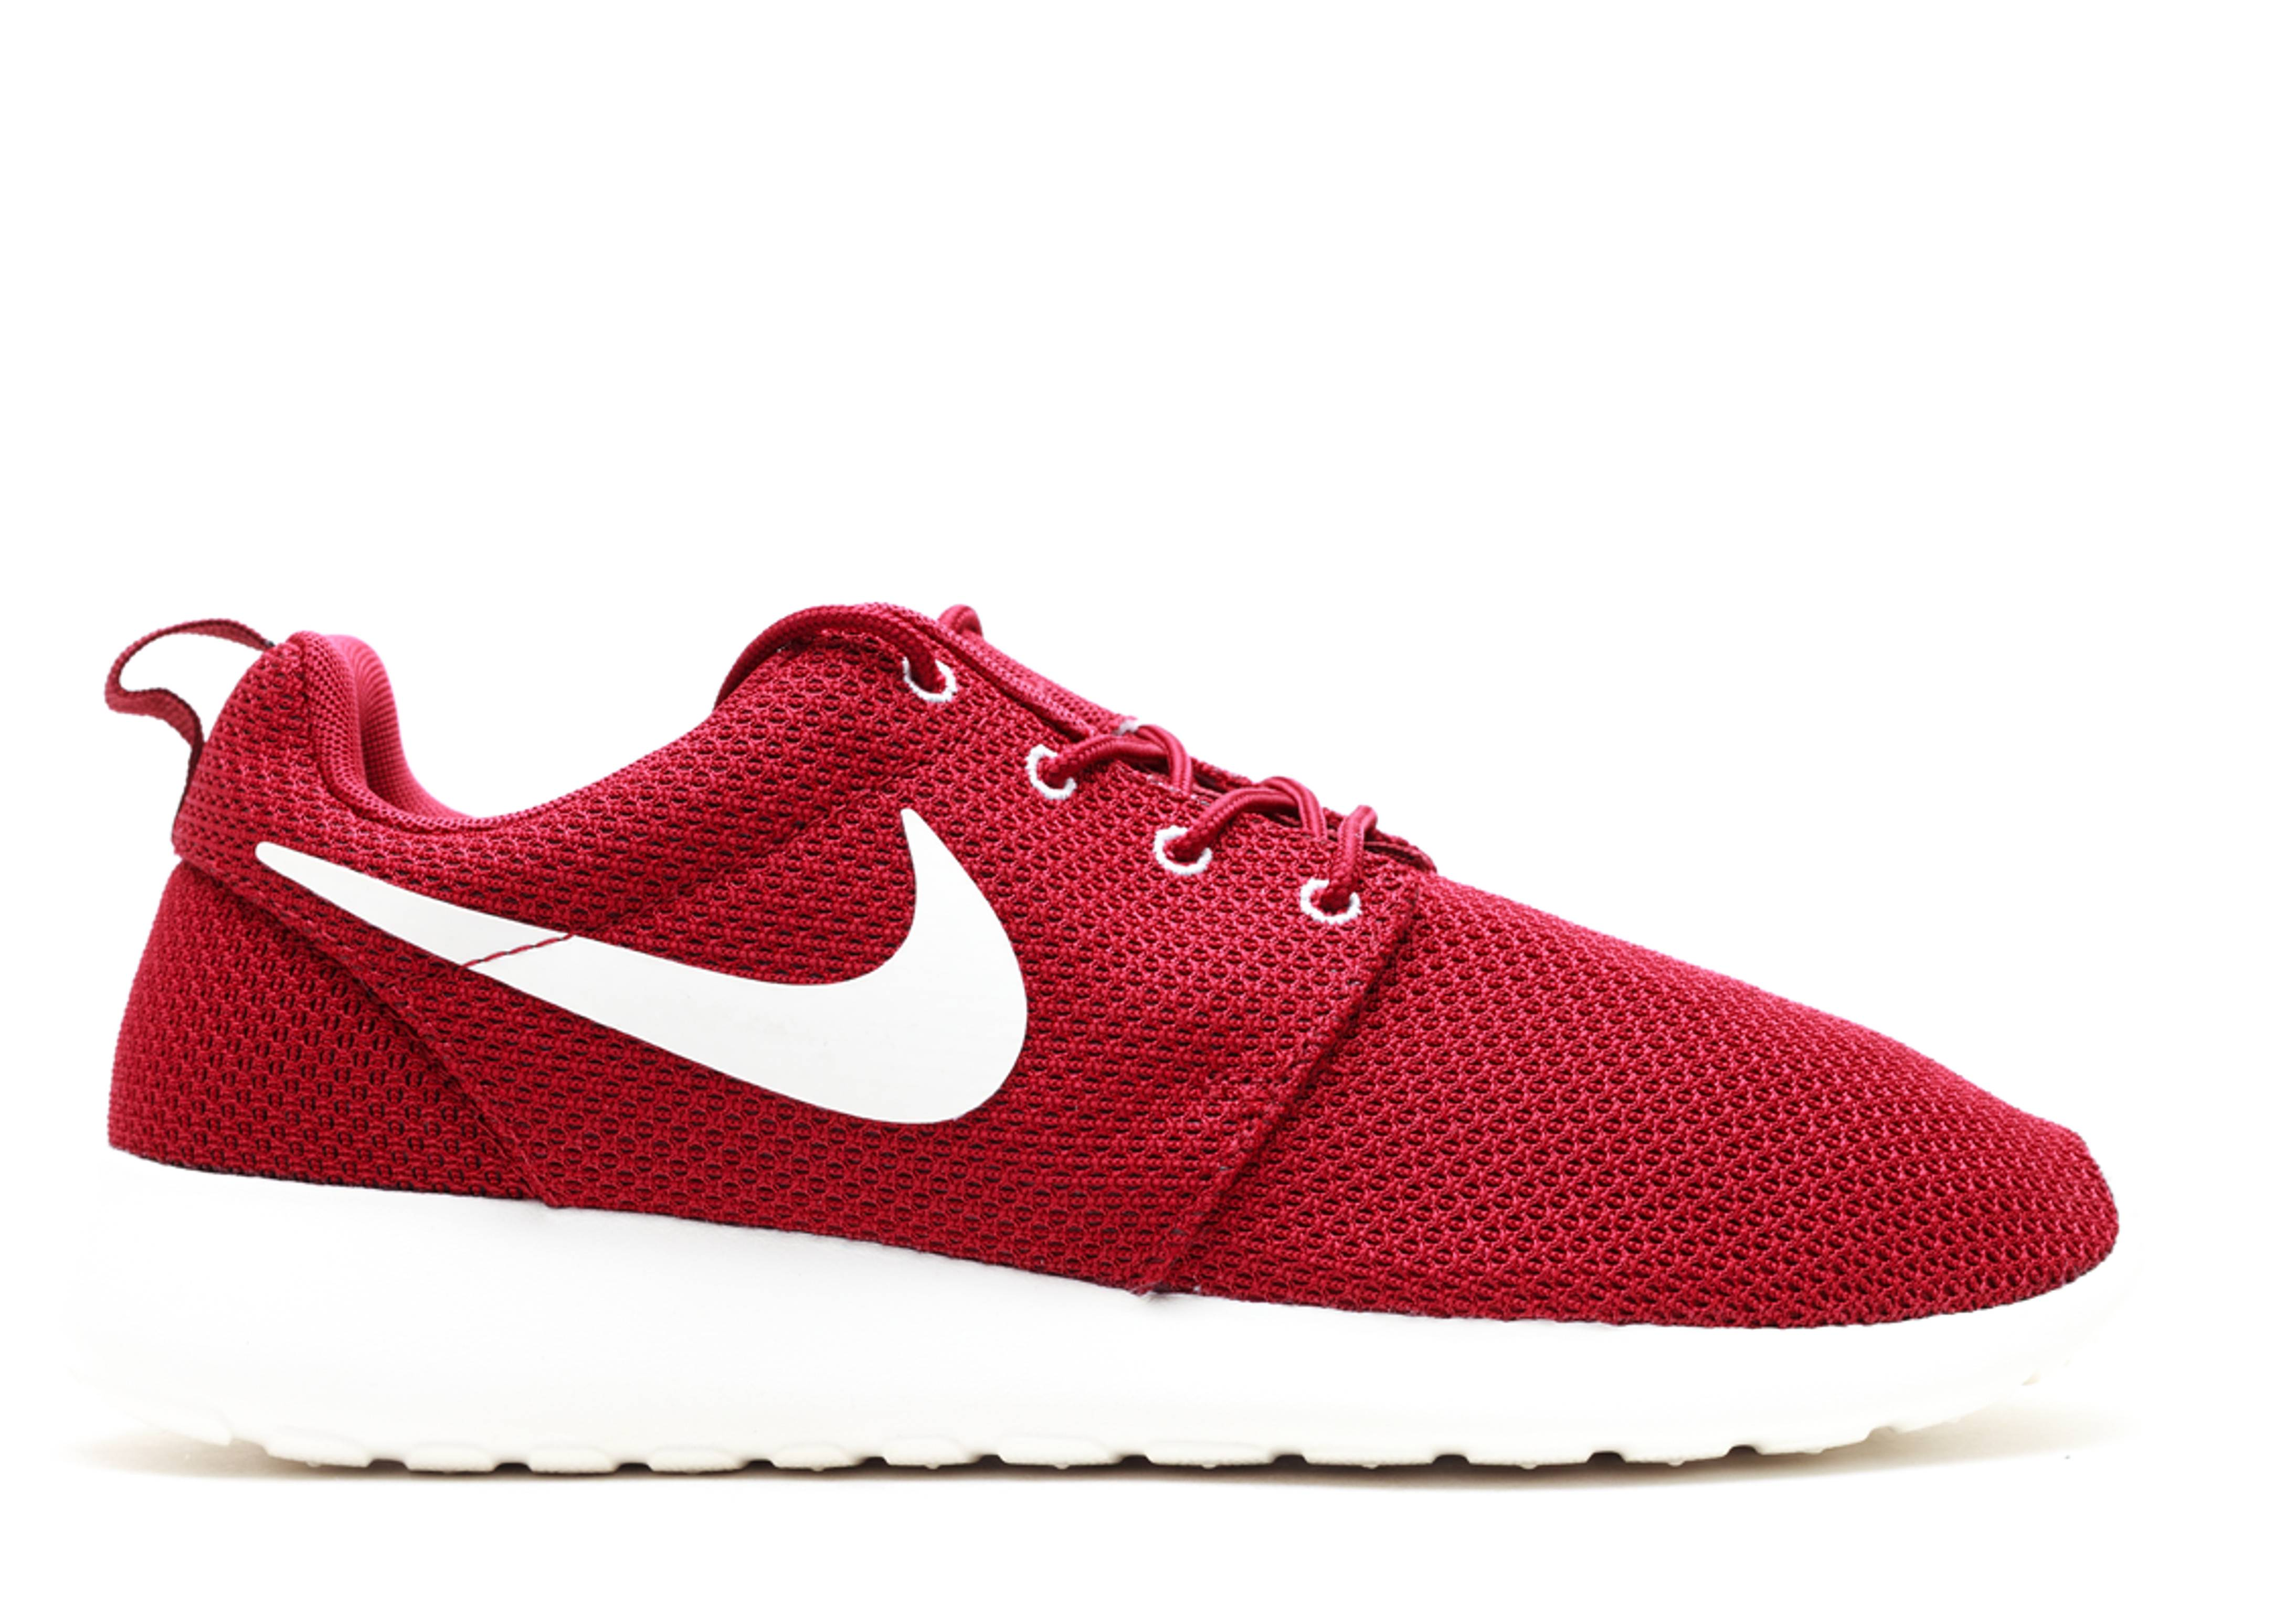 Nike Roshe Courir Voile Rouge Acheter Ici Payer